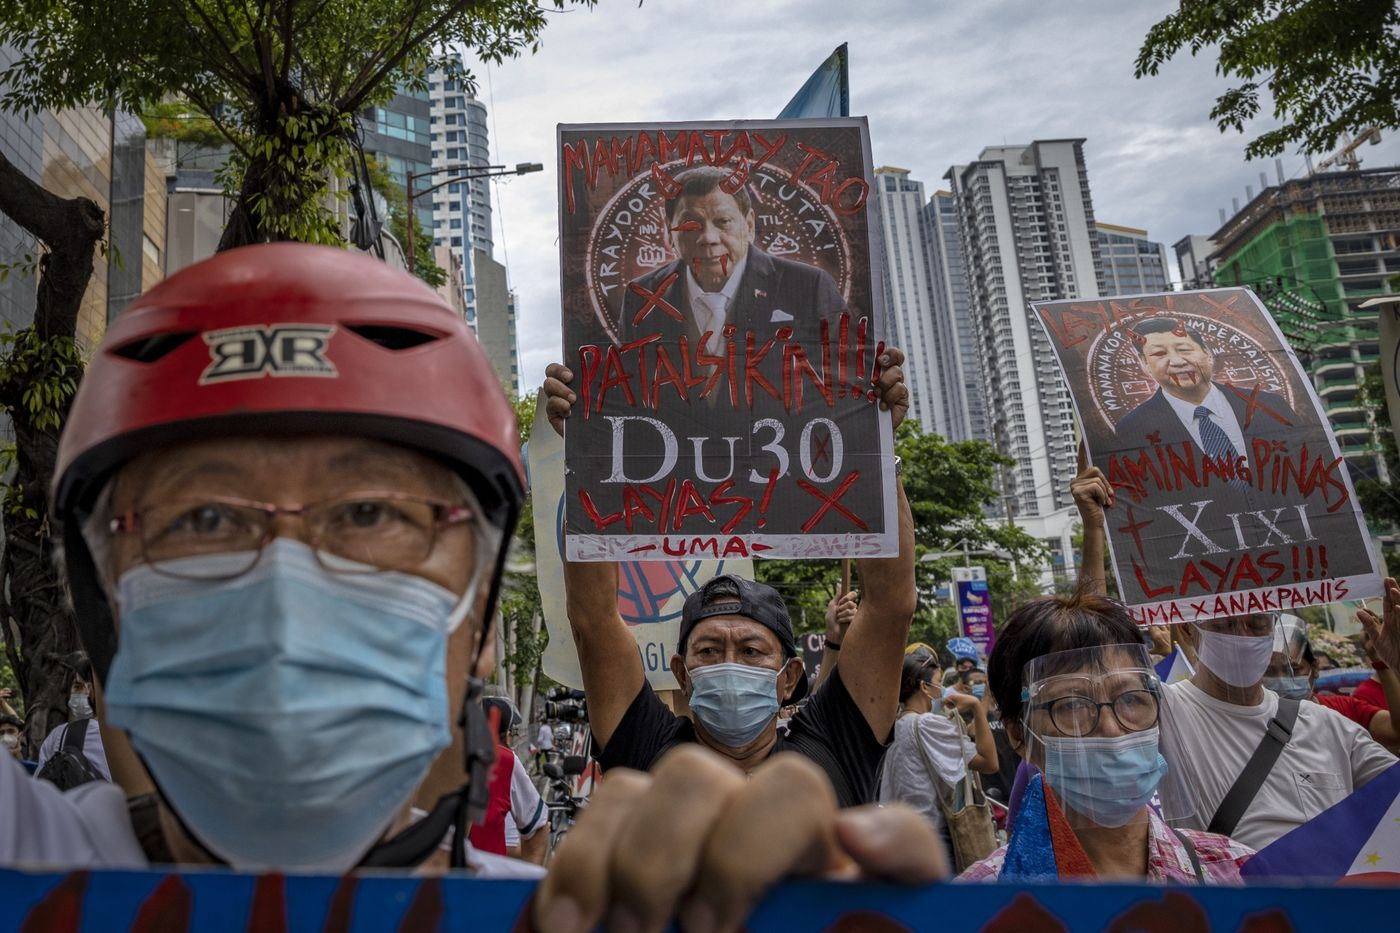 People Protest Against Chinese Intrusions In The Philippines' Waters